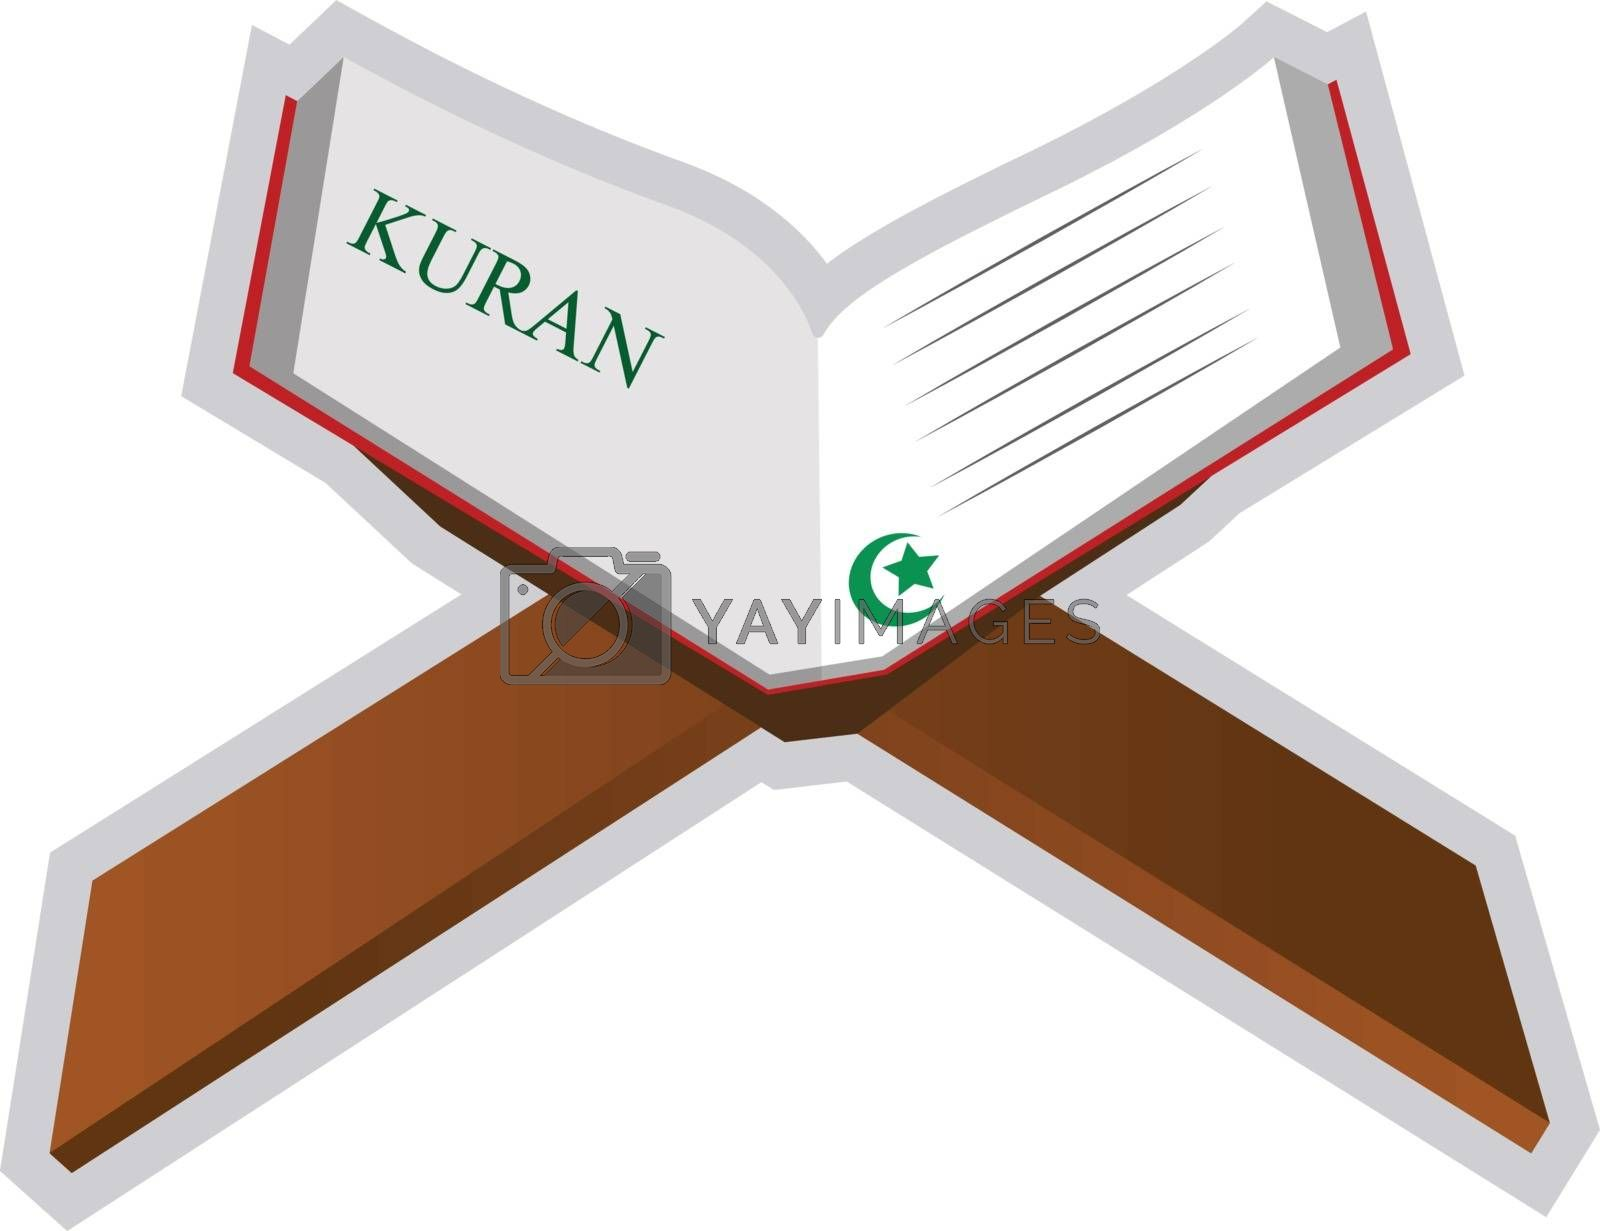 Royalty free image of Illustration of a holy book Quran on a white background by Morphart